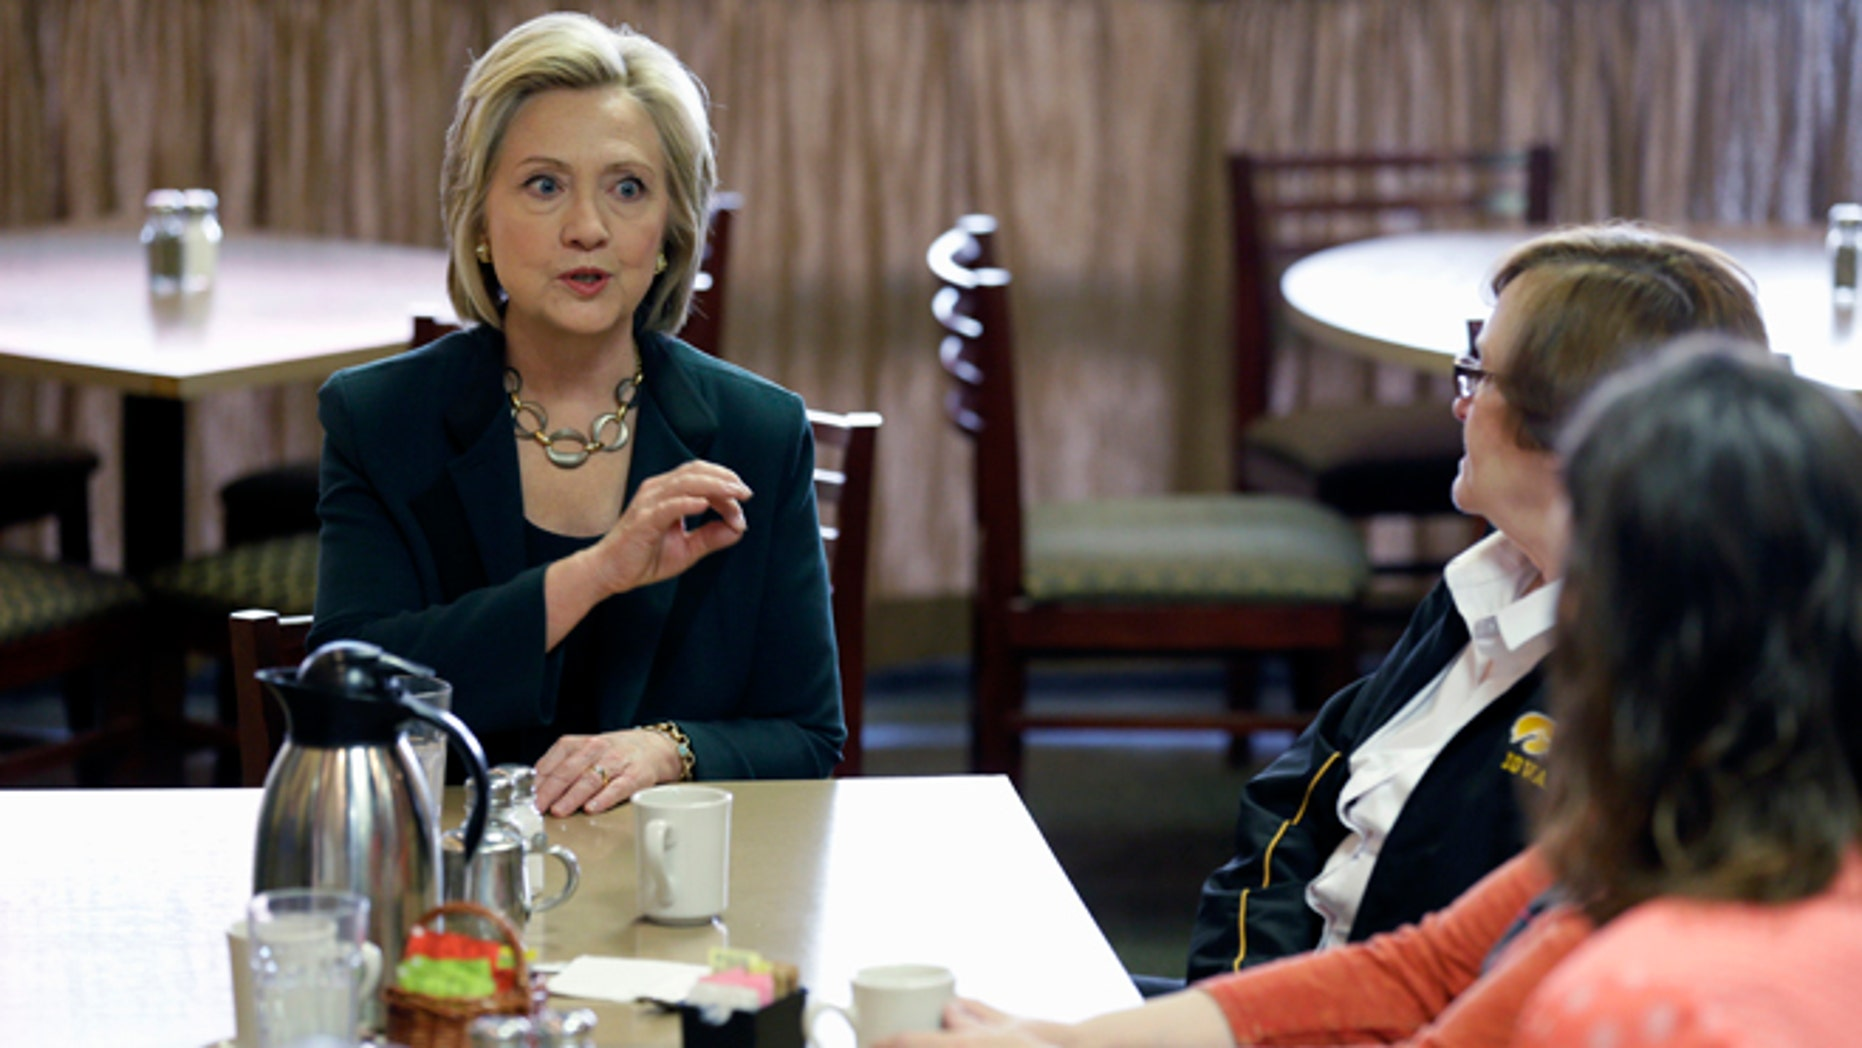 Democratic presidential candidate Hillary Rodham Clinton, left, visits with local residents at The Tremont, Wednesday, April 15, 2015, in Marshalltown, Iowa. (AP Photo/Charlie Neibergall)